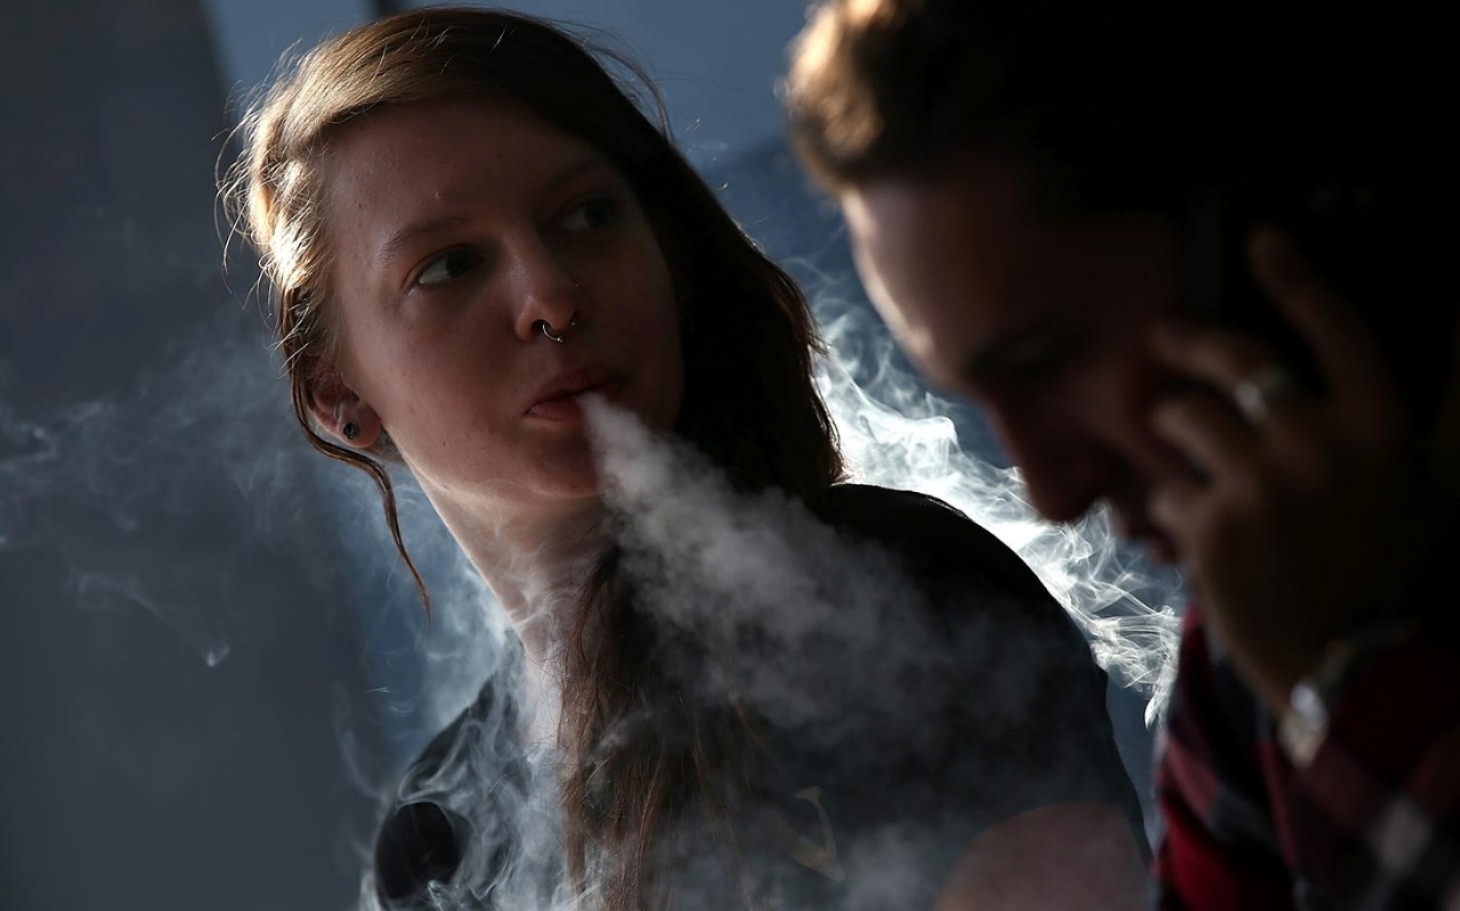 Smoking Girl Hd Wallpaper For Mobile Study Link Between E Cigarettes Smoking In Youth Al